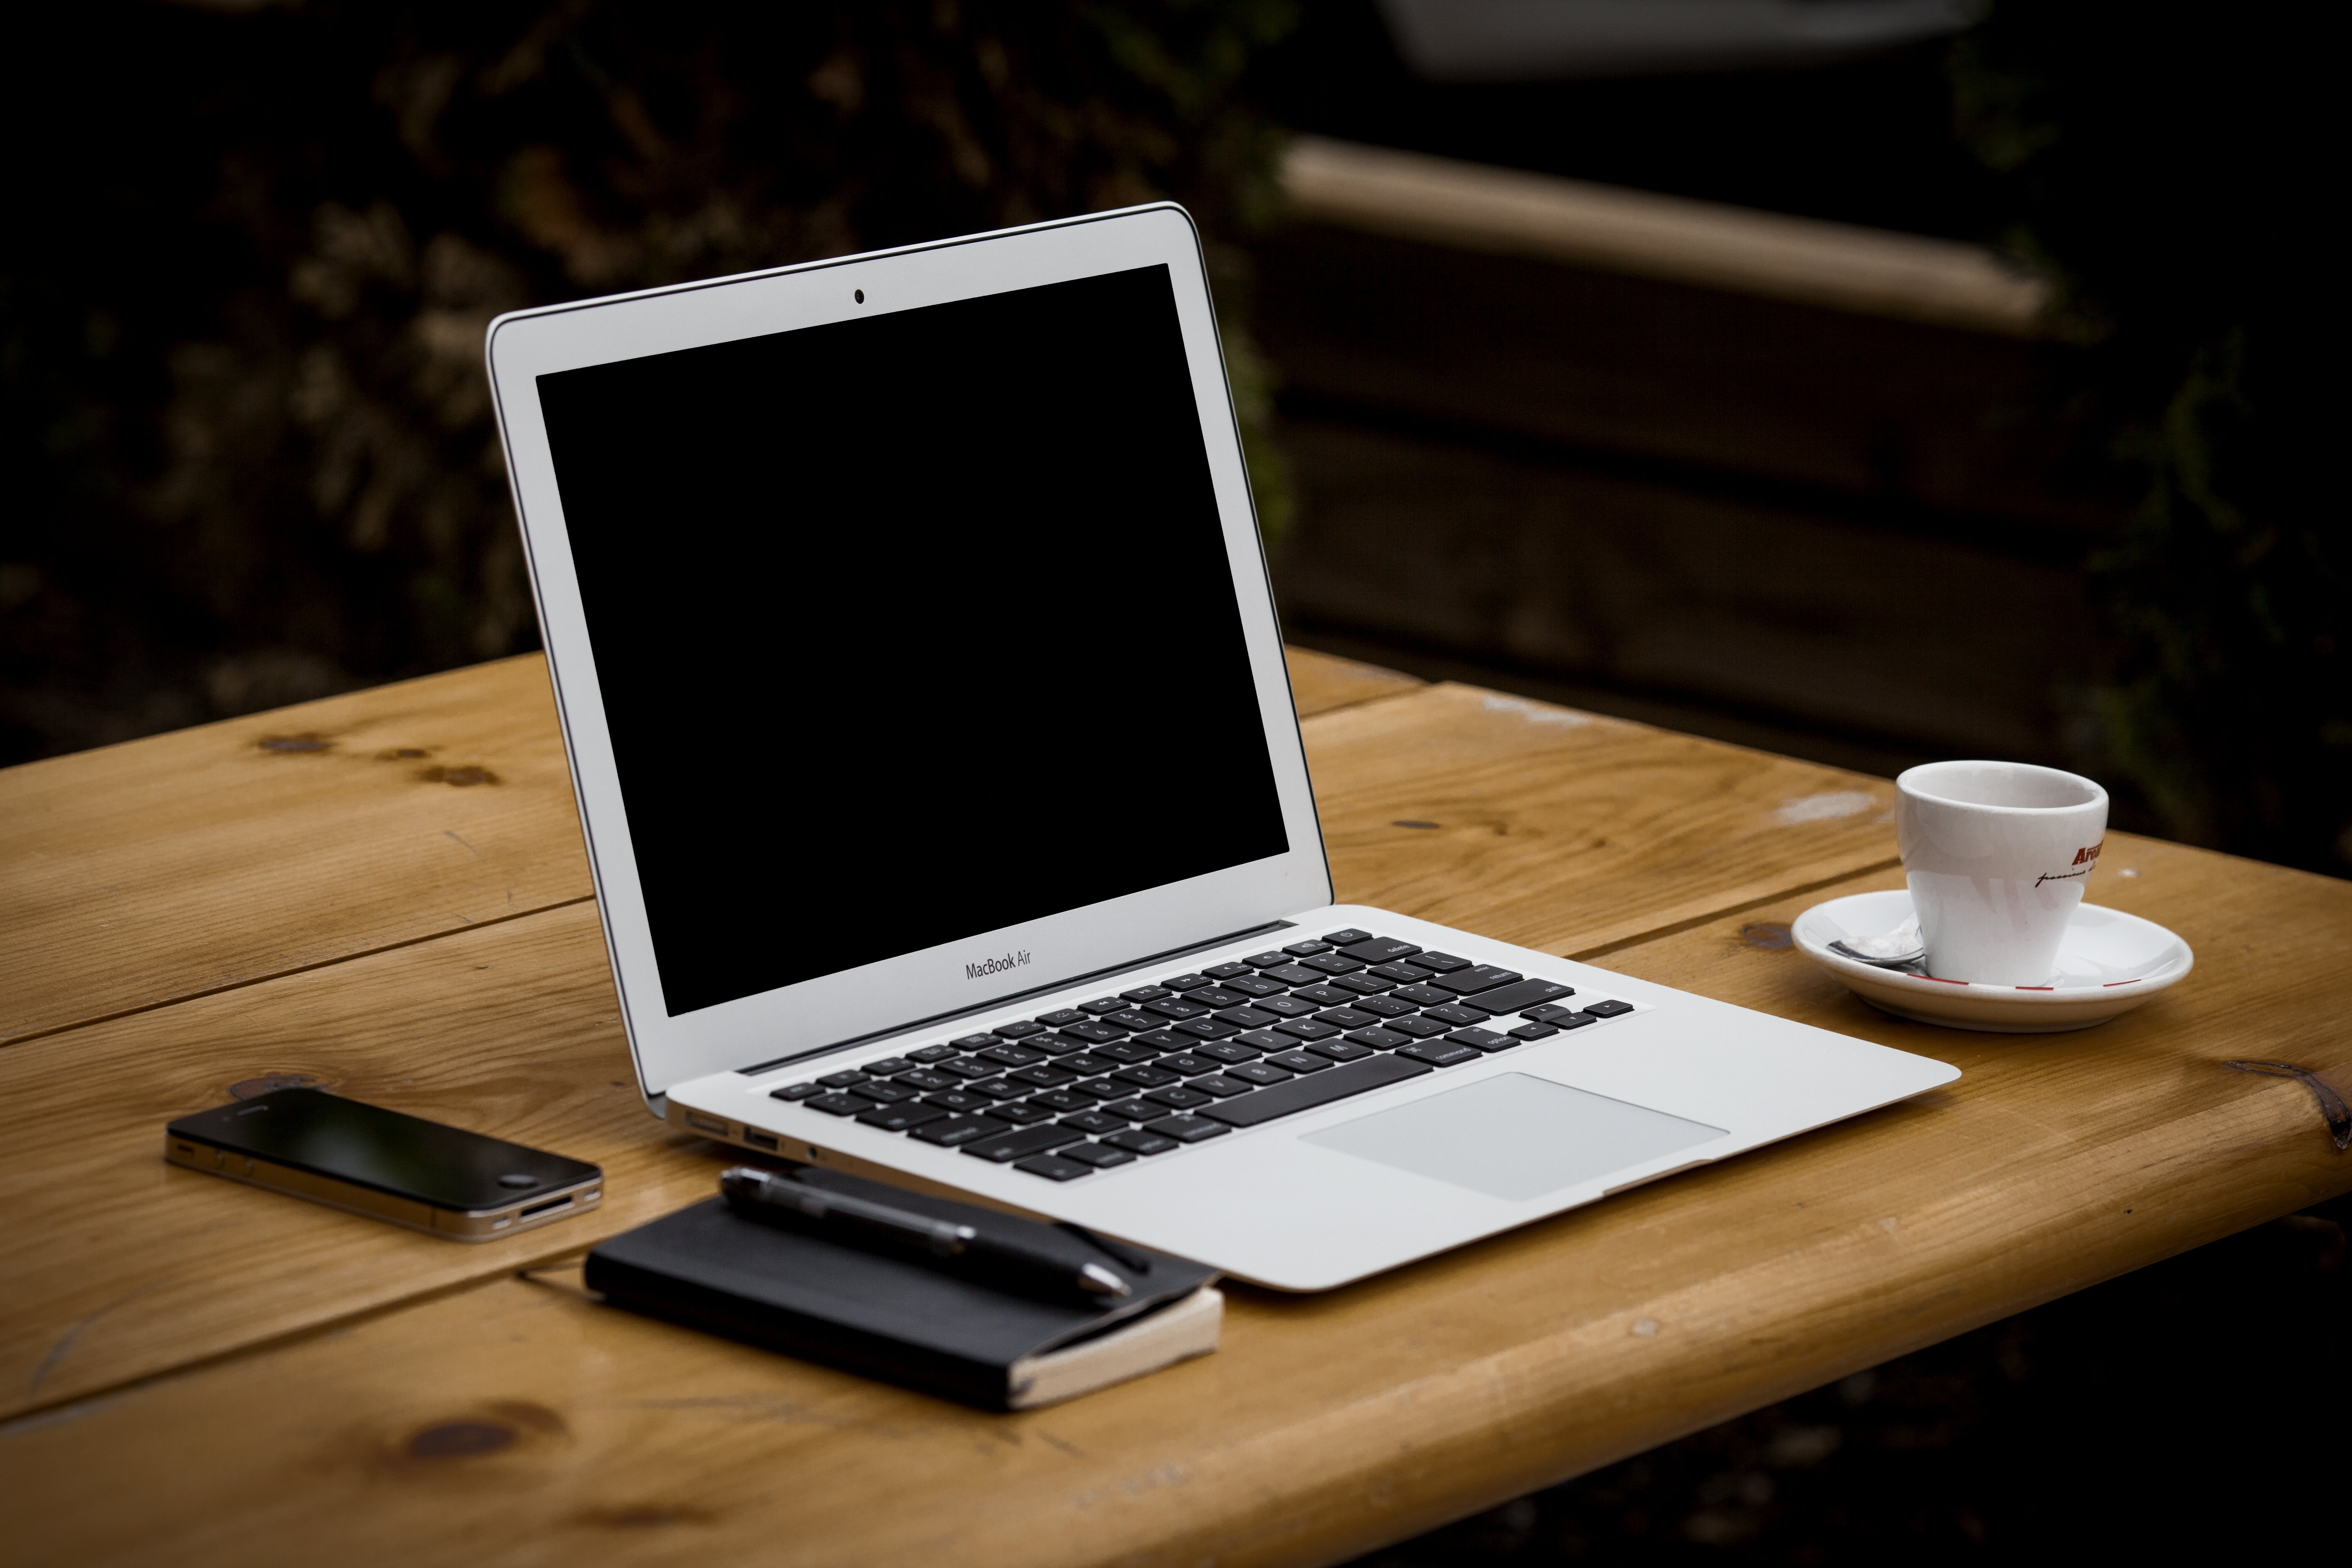 Submissions for this Year's Top Church Tech Blogs